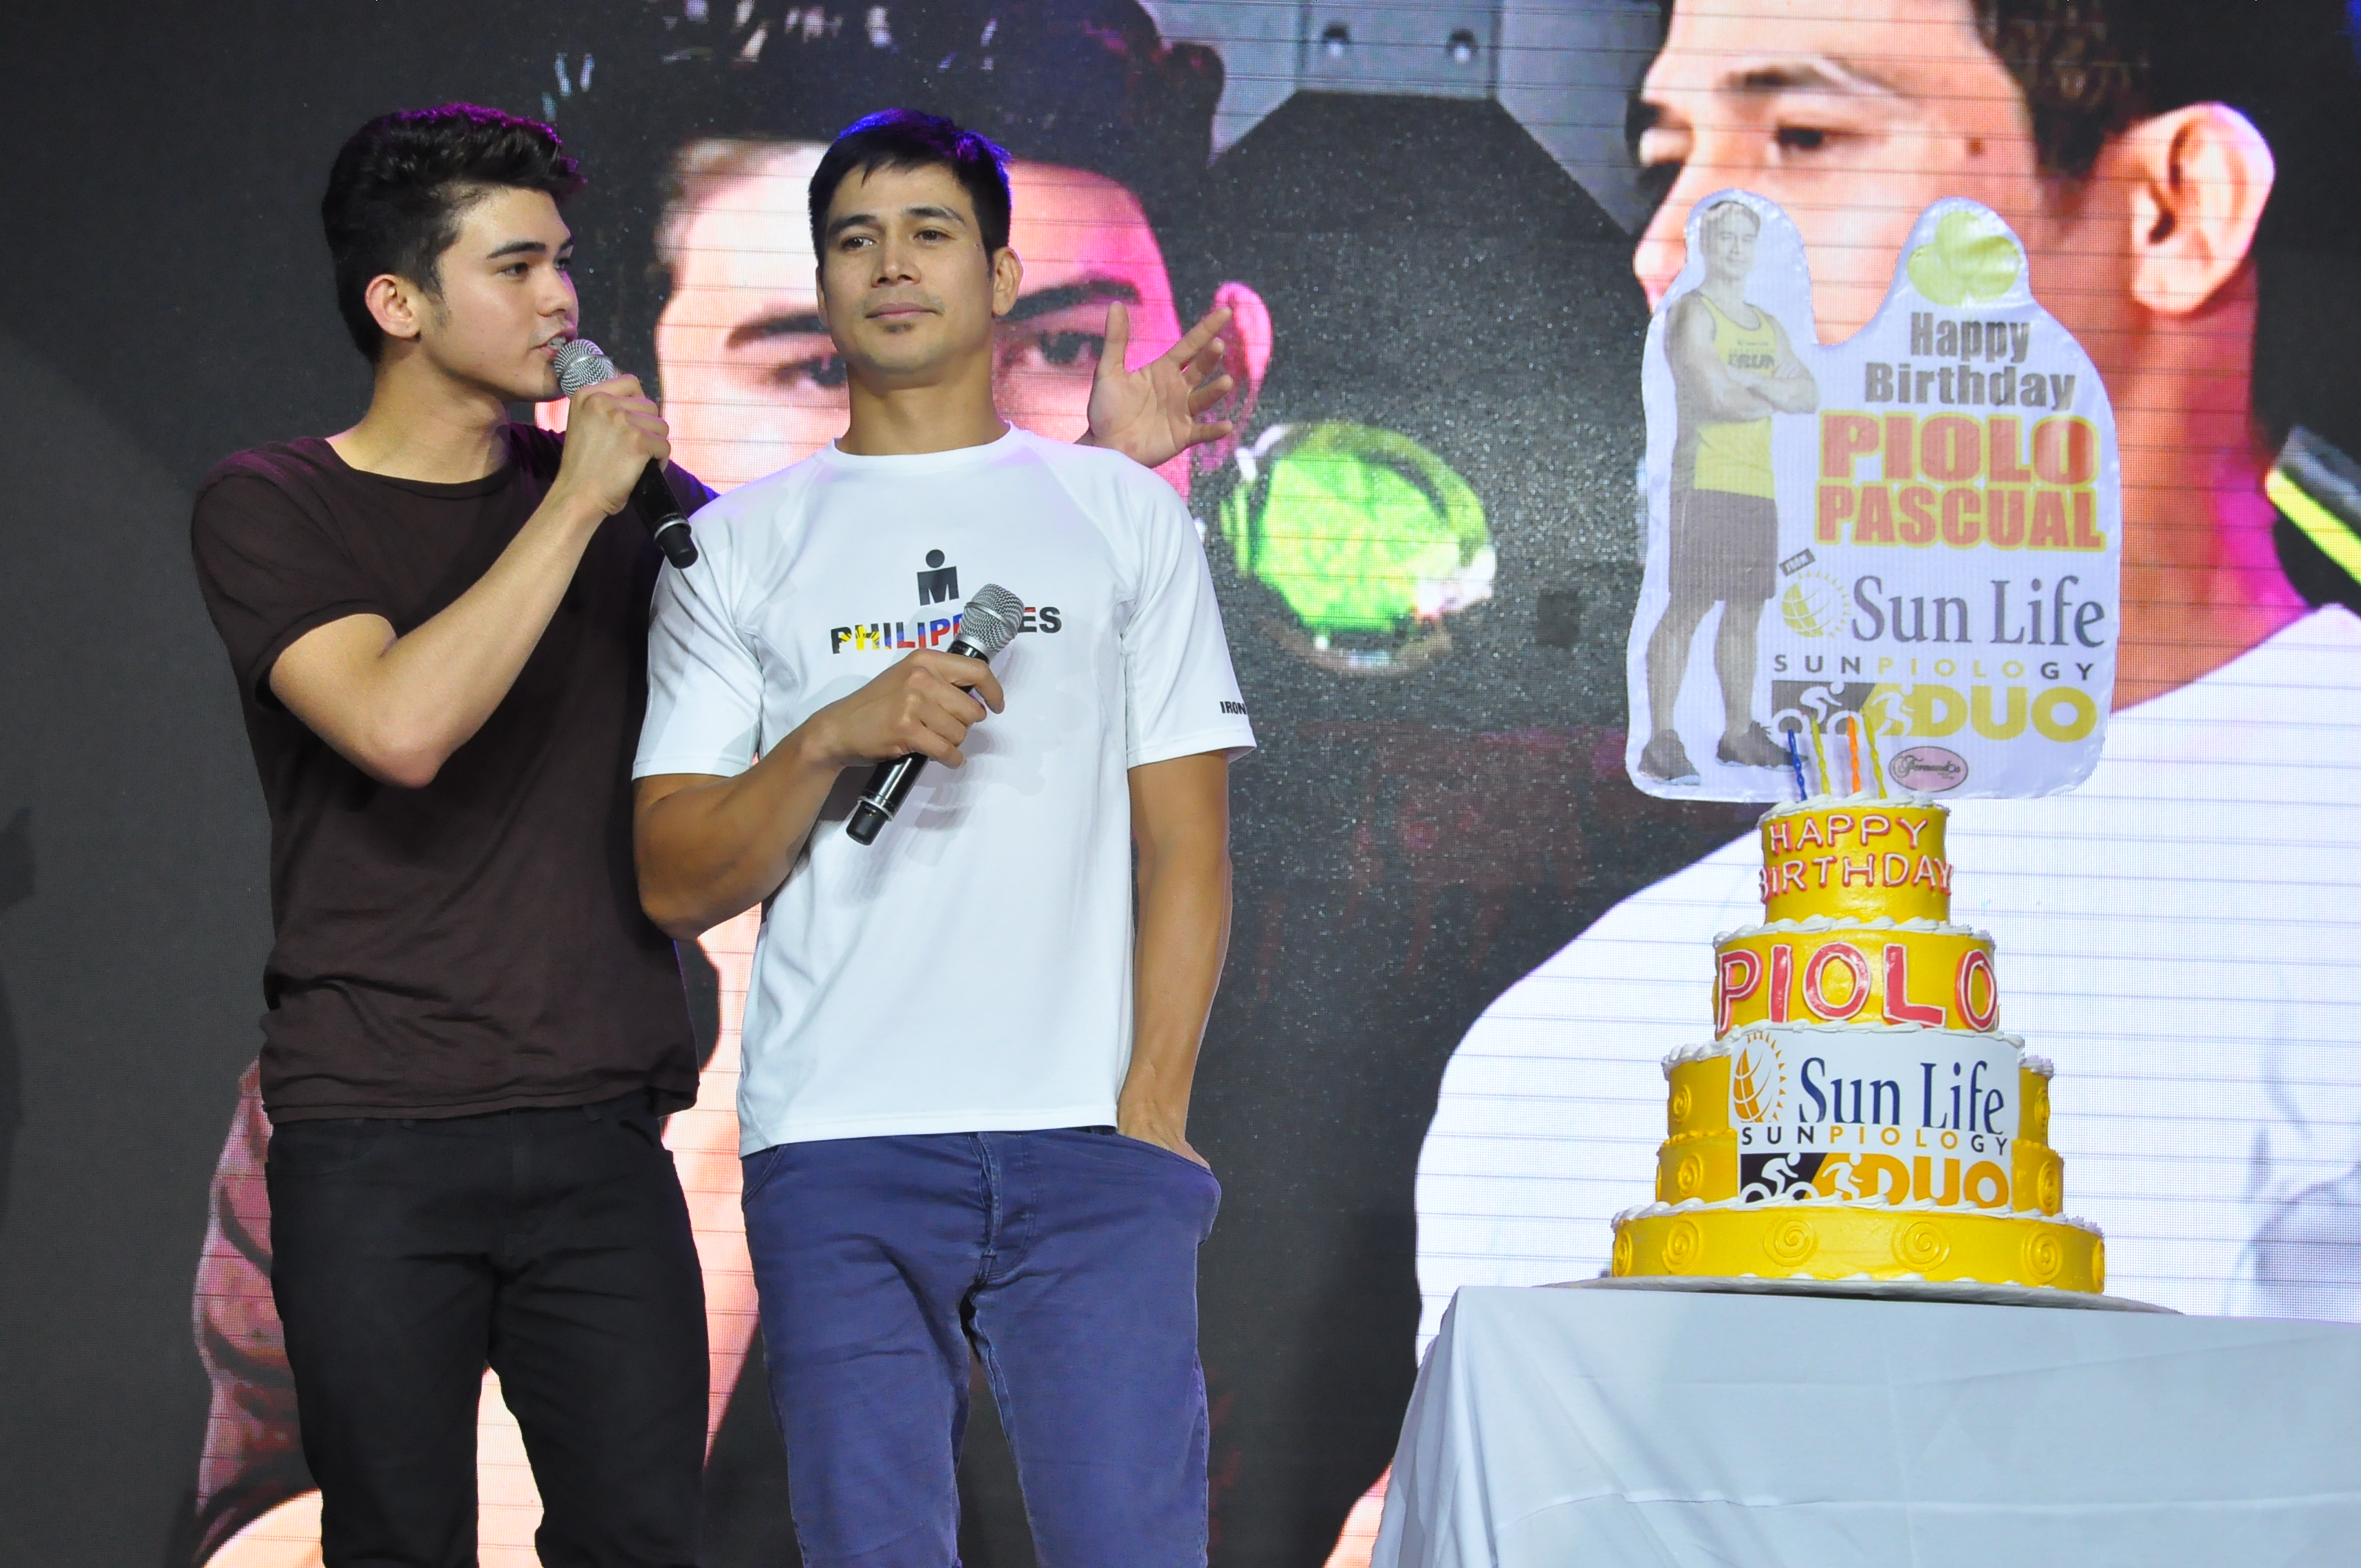 BIRTHDAY SURPRISE. Inigo (Left) and Piolo Pascual (Right) treated fans in celebration of the latter's recent birthday. Photo from Sun Life